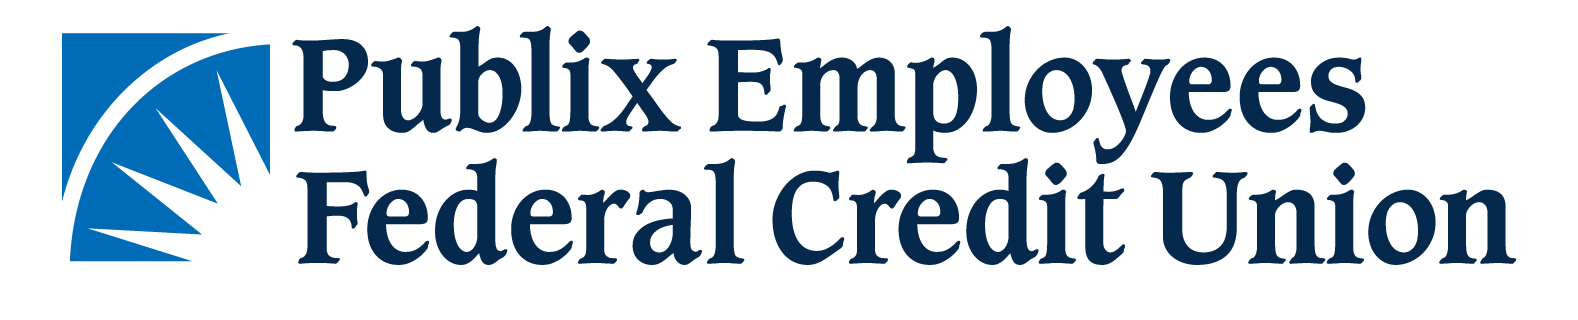 Publix Employees Federal Credit Union logo